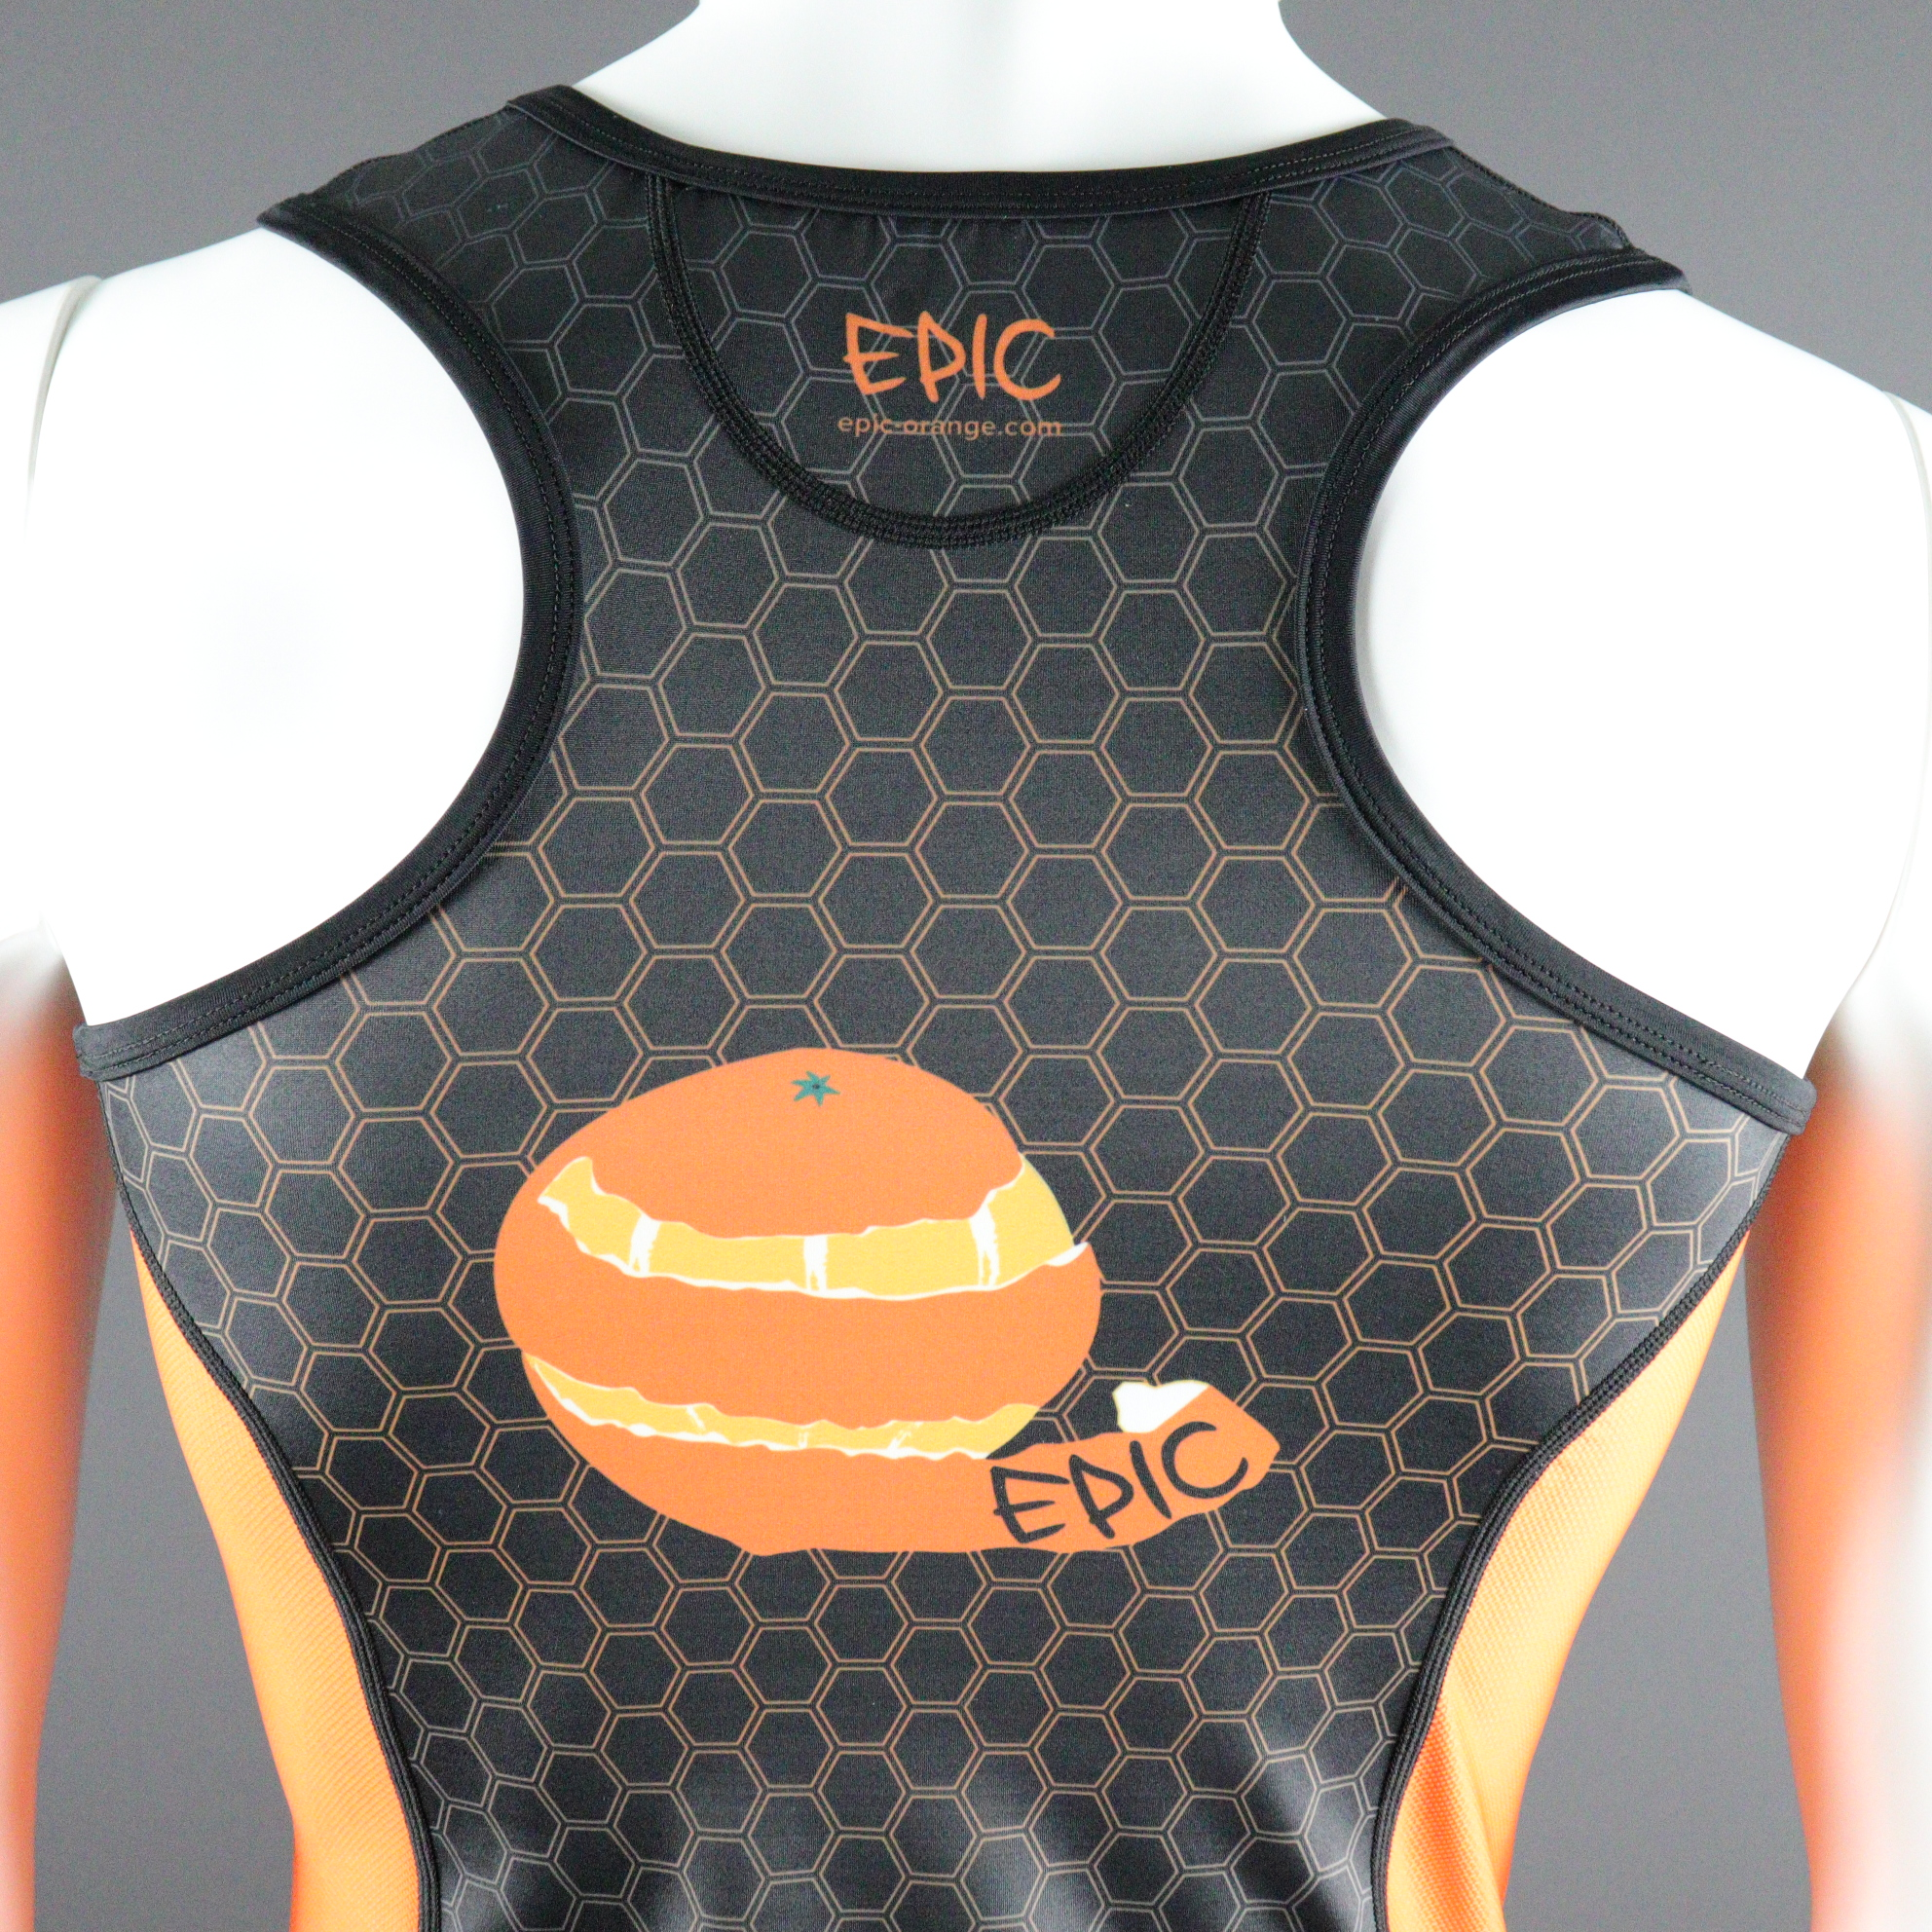 Custom Printed Endurance Tri Tops